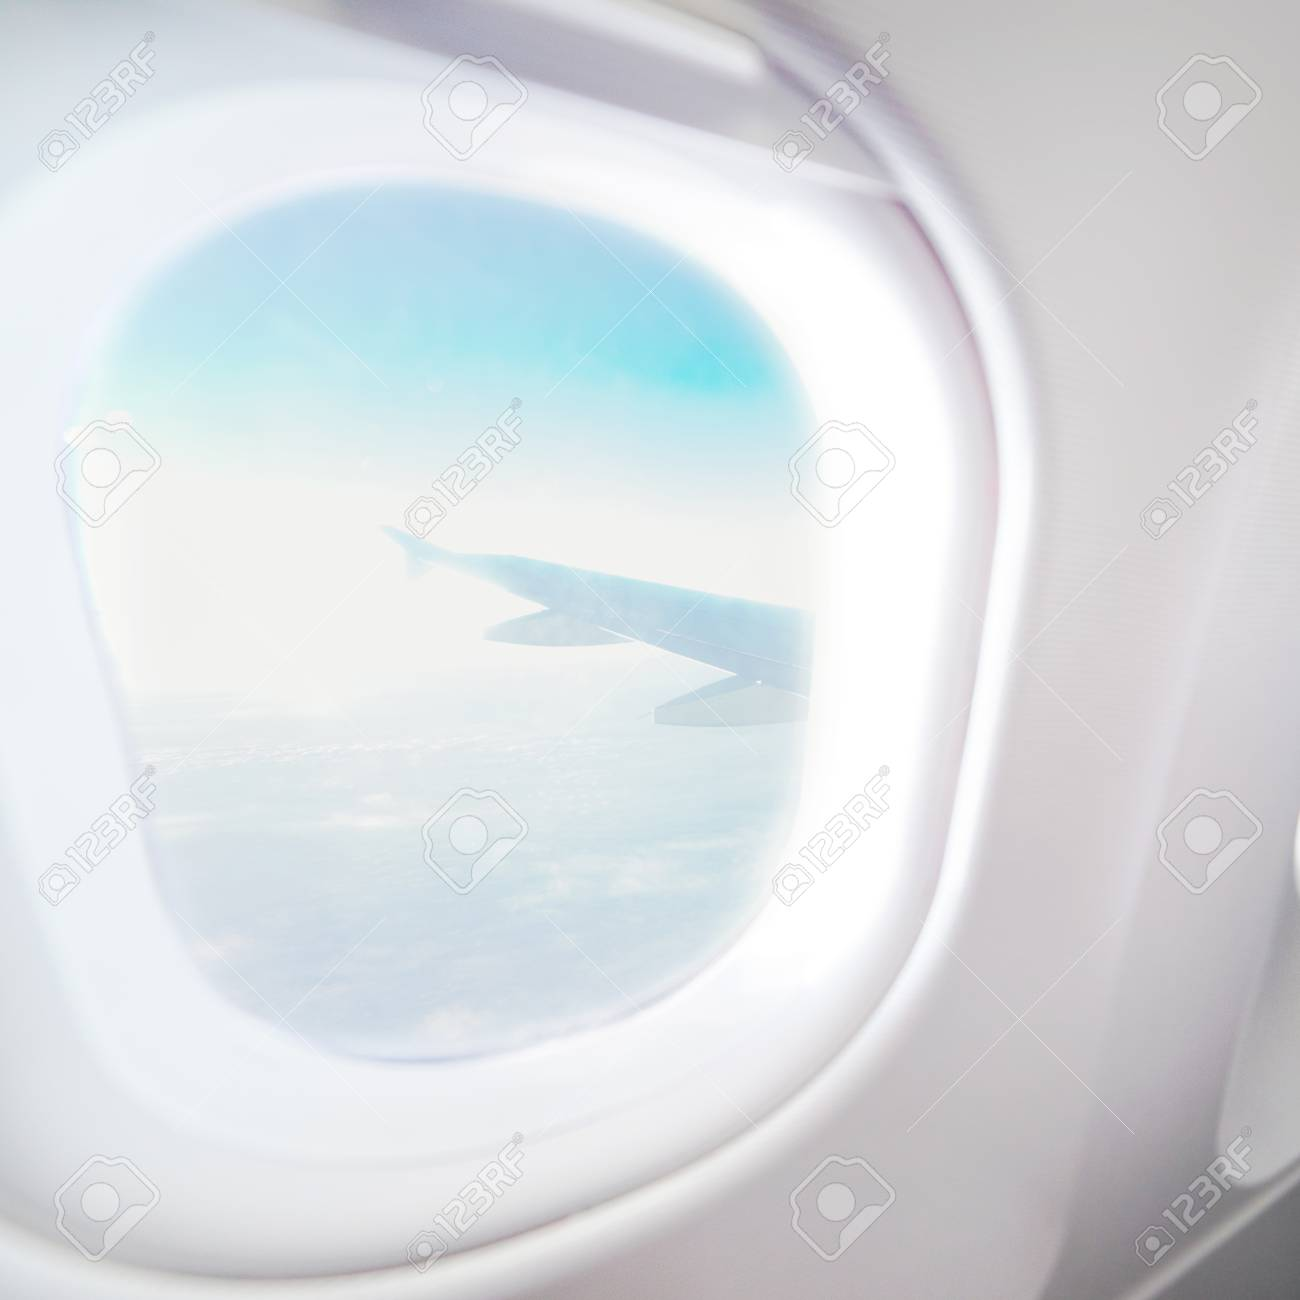 Airplane Window View Inside An Aircraft Window Plane Vacation